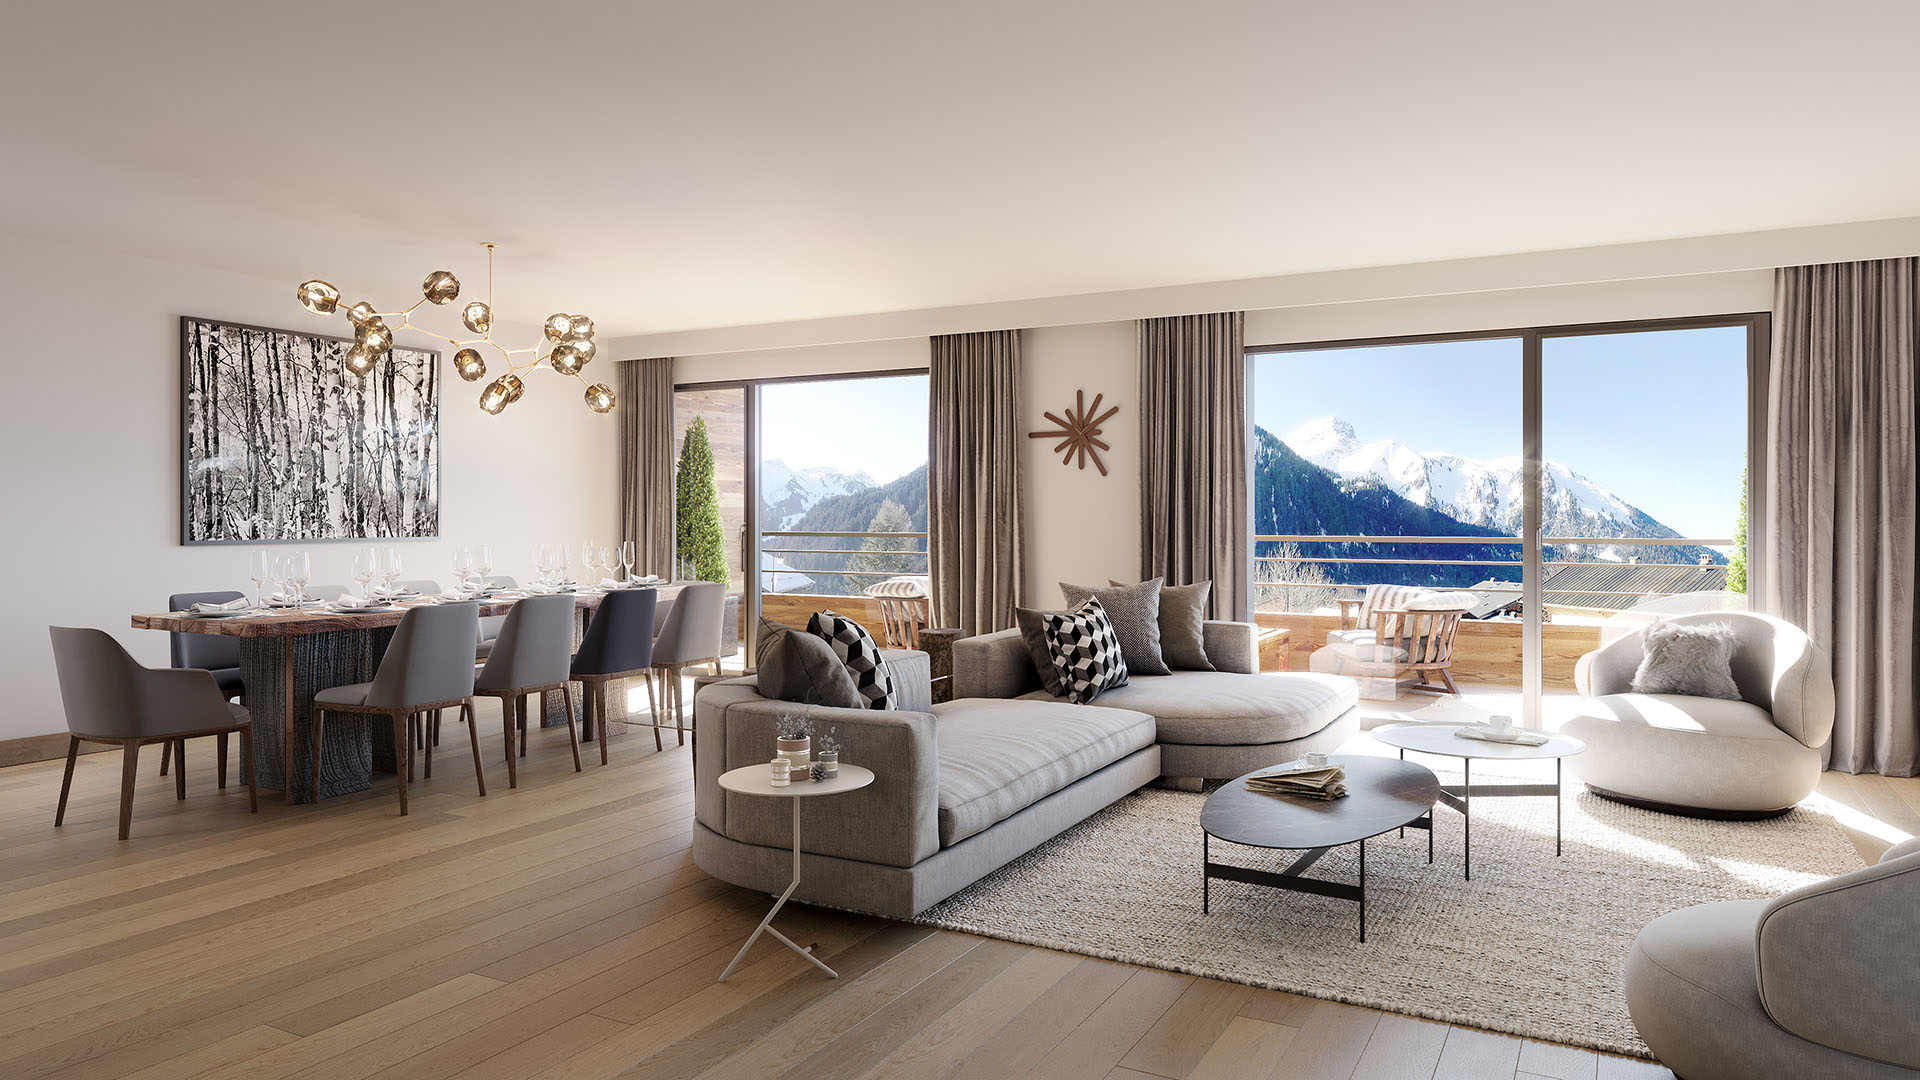 3D representation of a modern living room in the mountains